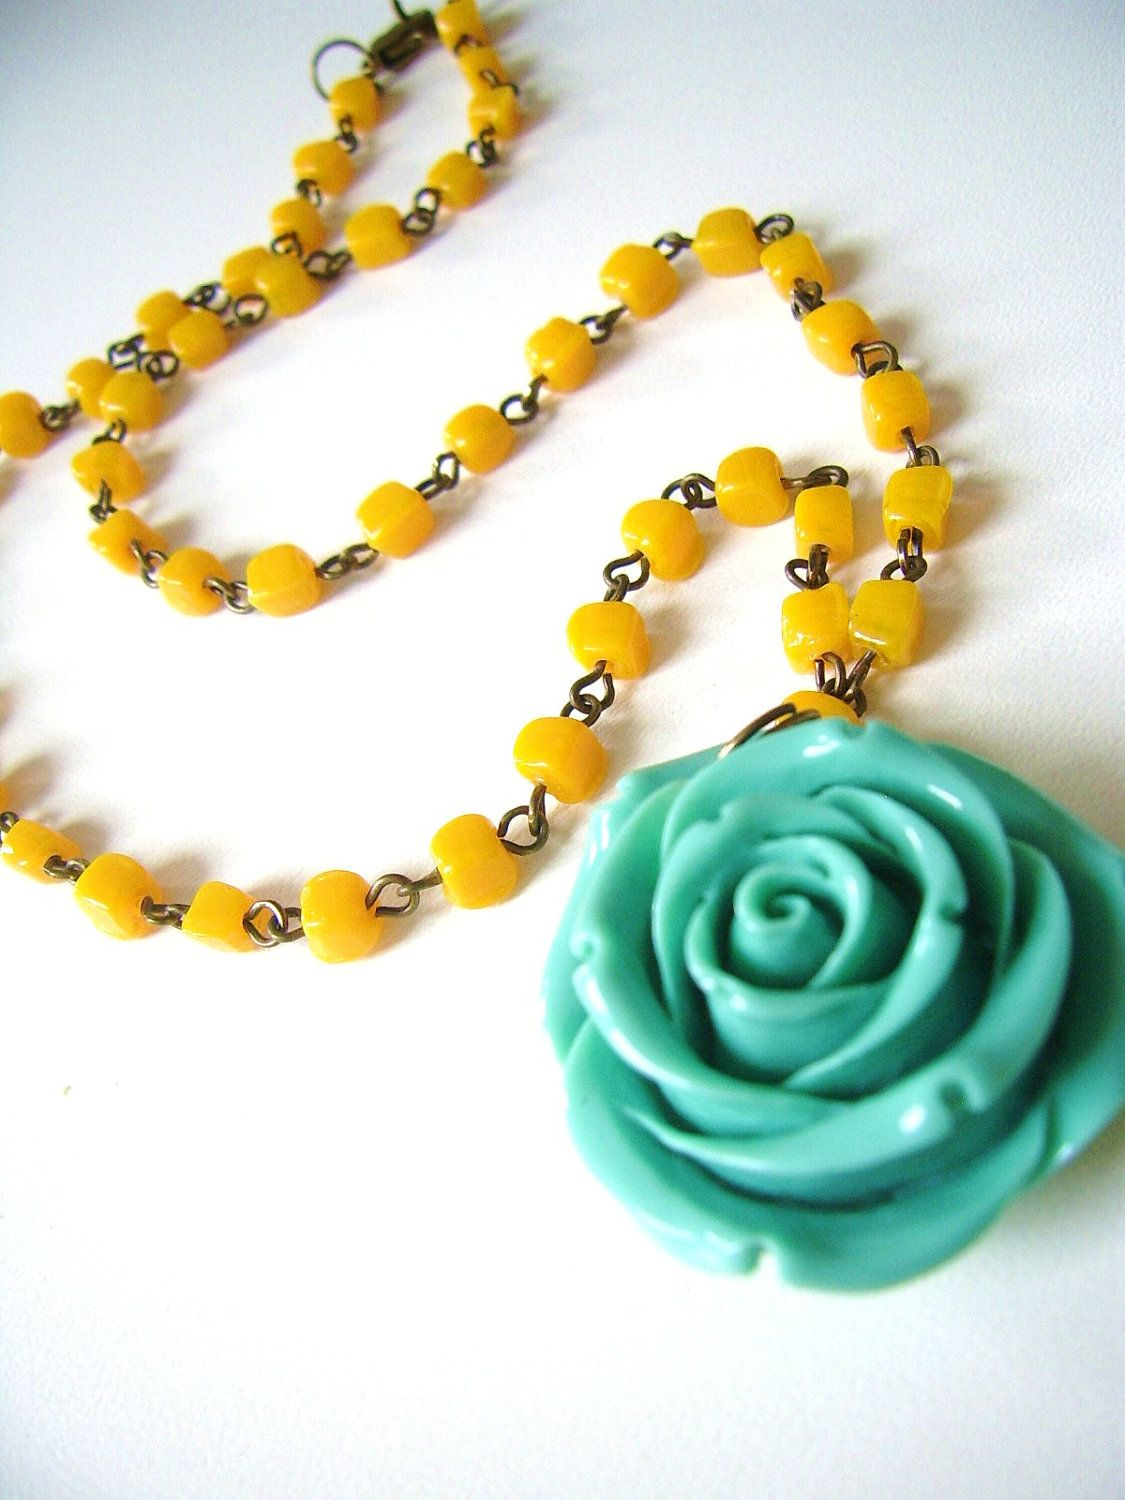 A beaded necklace in honey yellow with big rose pendant honey